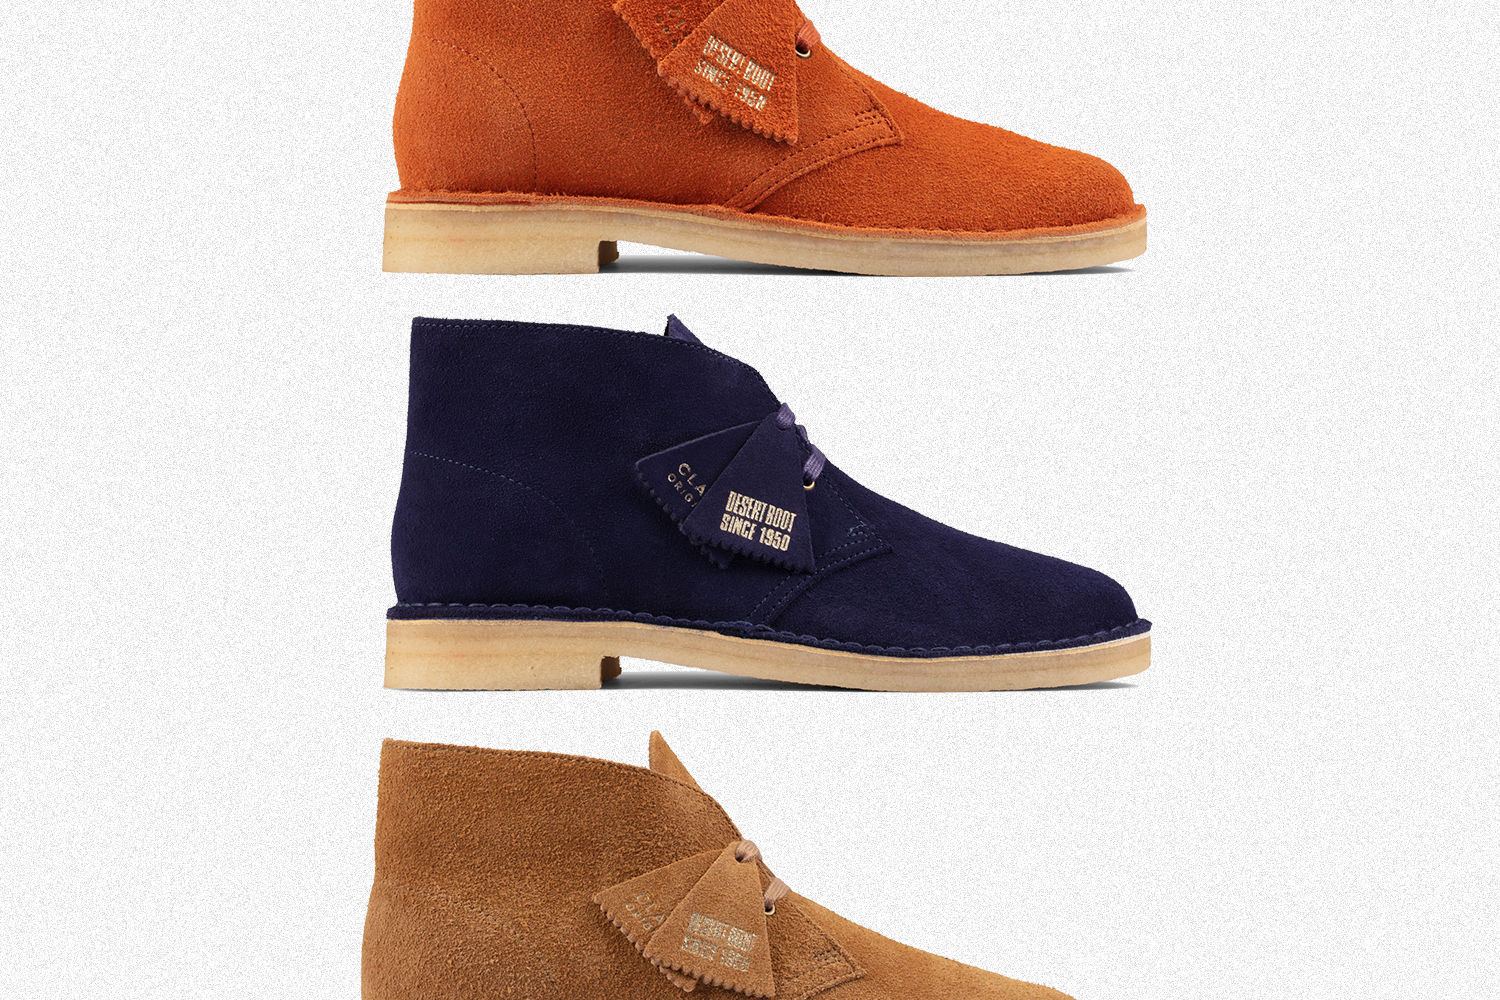 Off Clarks Desert Boots During the Fall